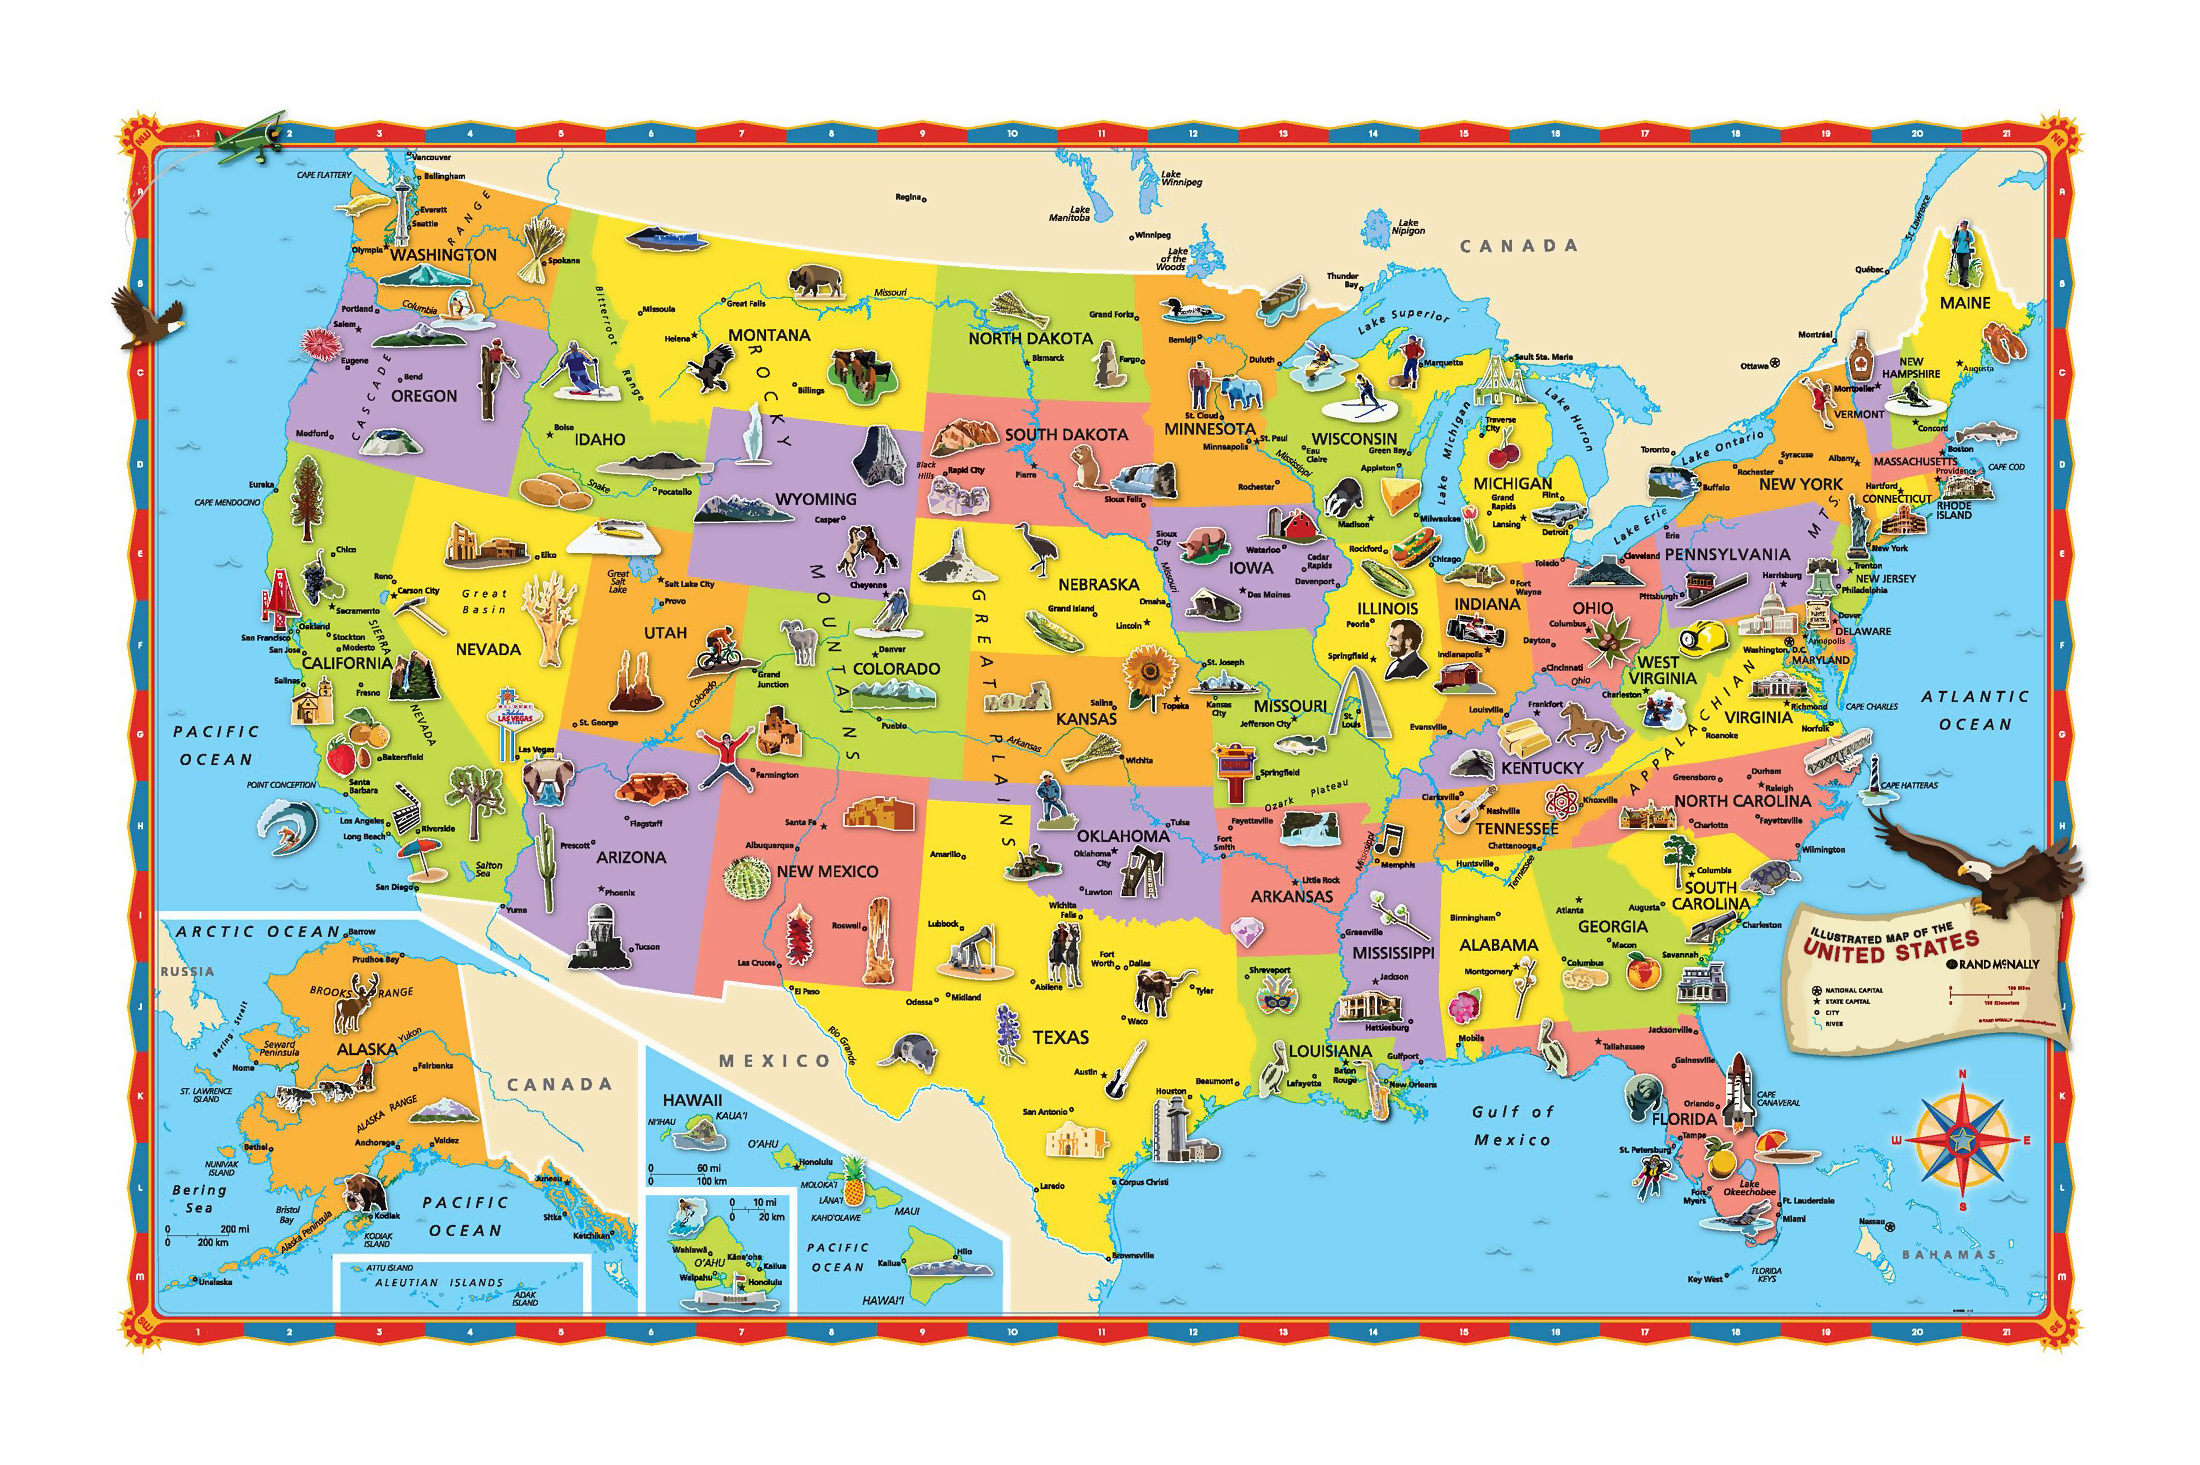 Large Tourist Illustrated Map Of The USA USA United States Of - Usa large map